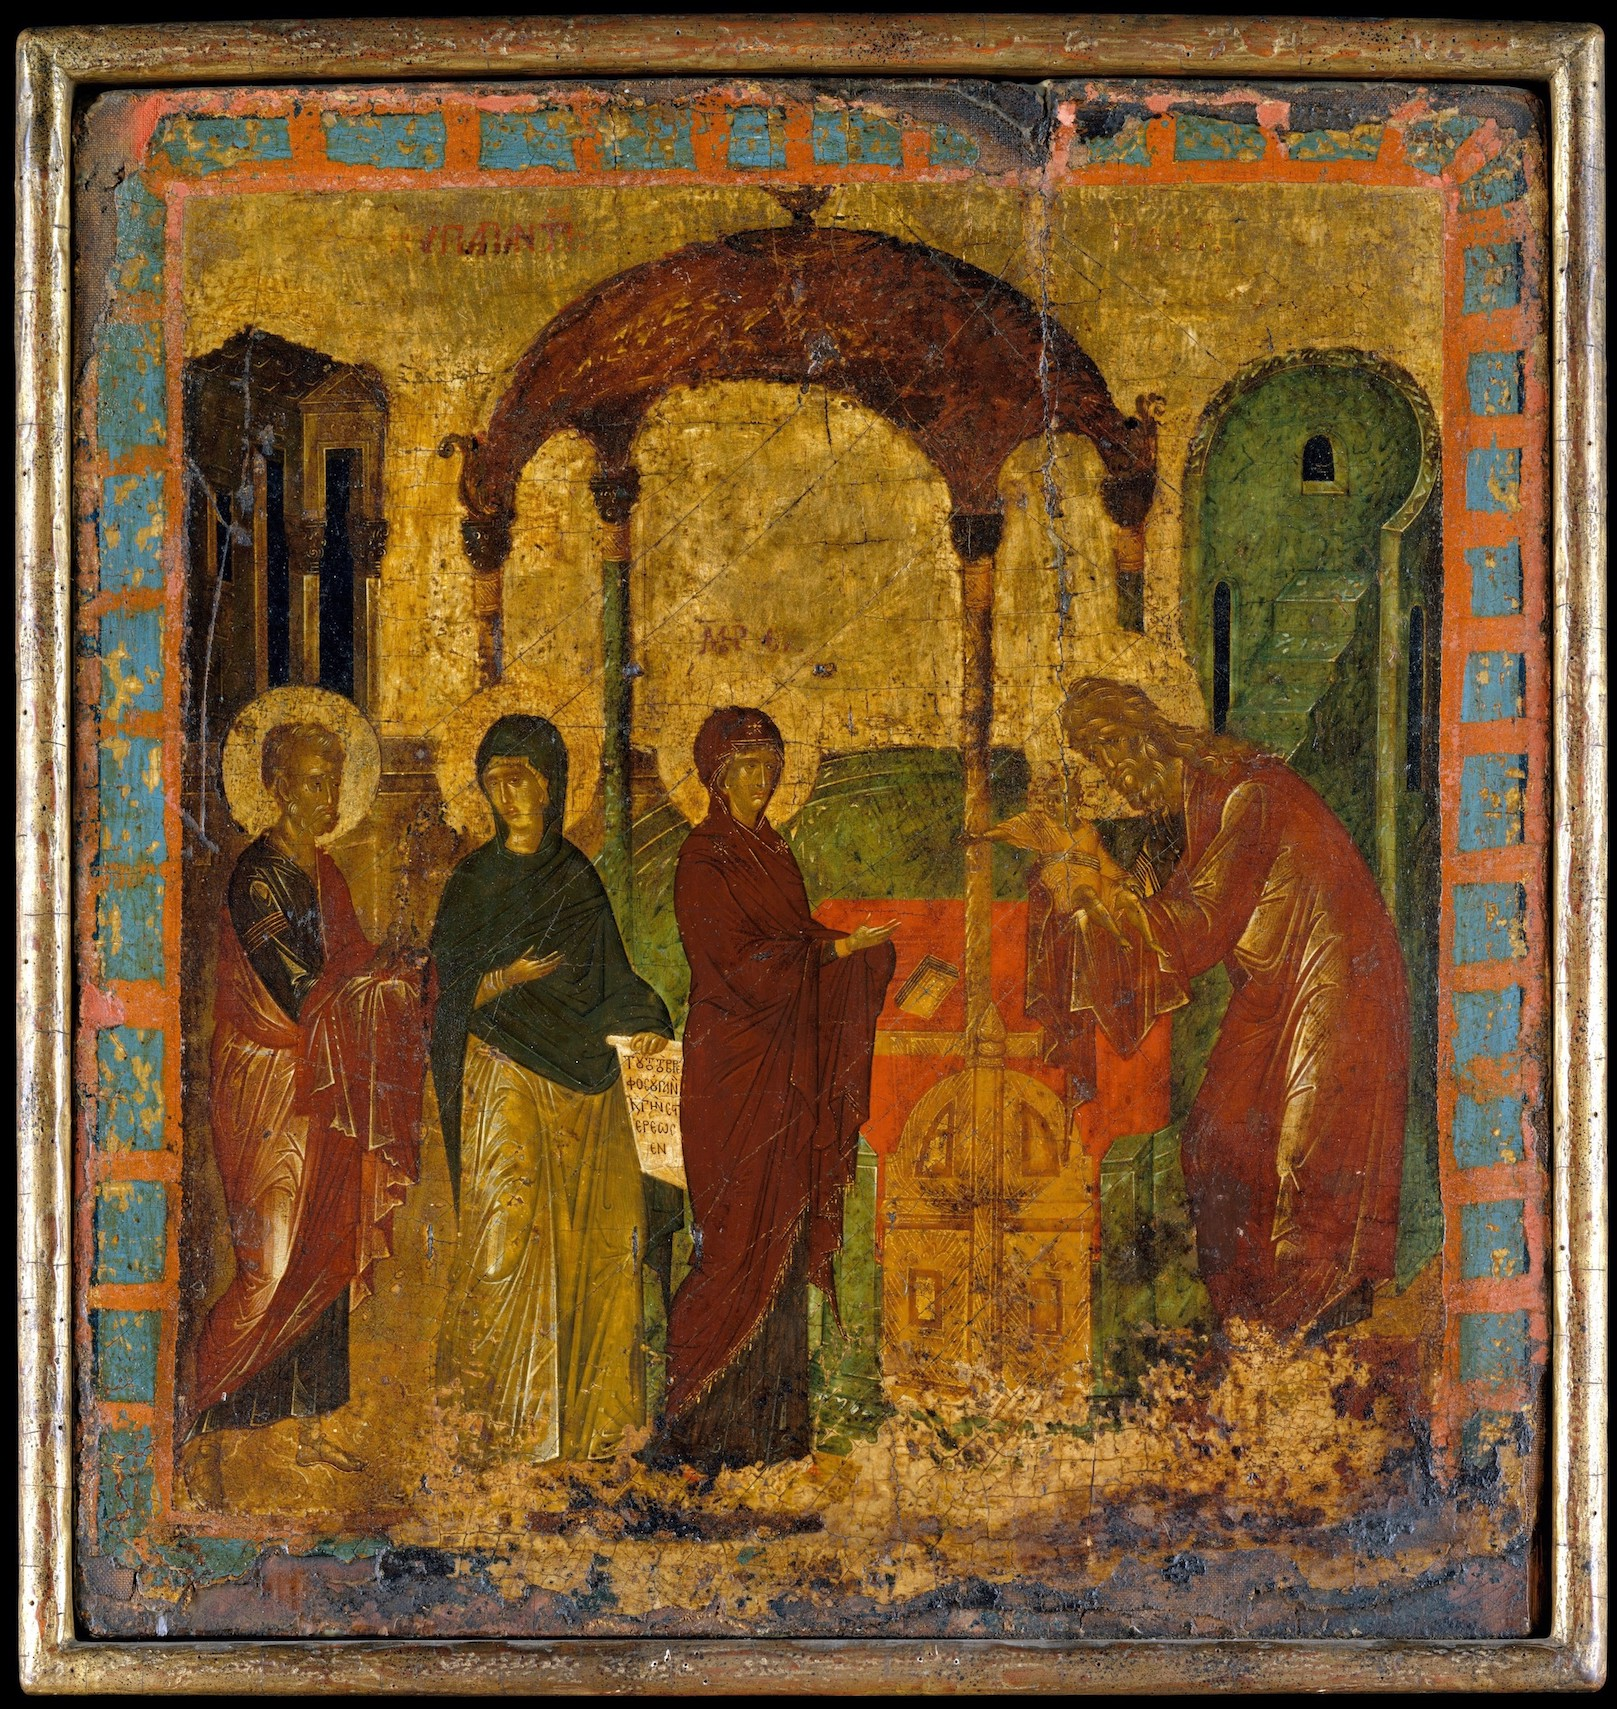 Figure 3. Anna holding inscribed scroll at the Presentation of Christ, wood panel by the 15c. Byzantine Painter. New York, Metropolitan Museum of Art, 31.67.8.